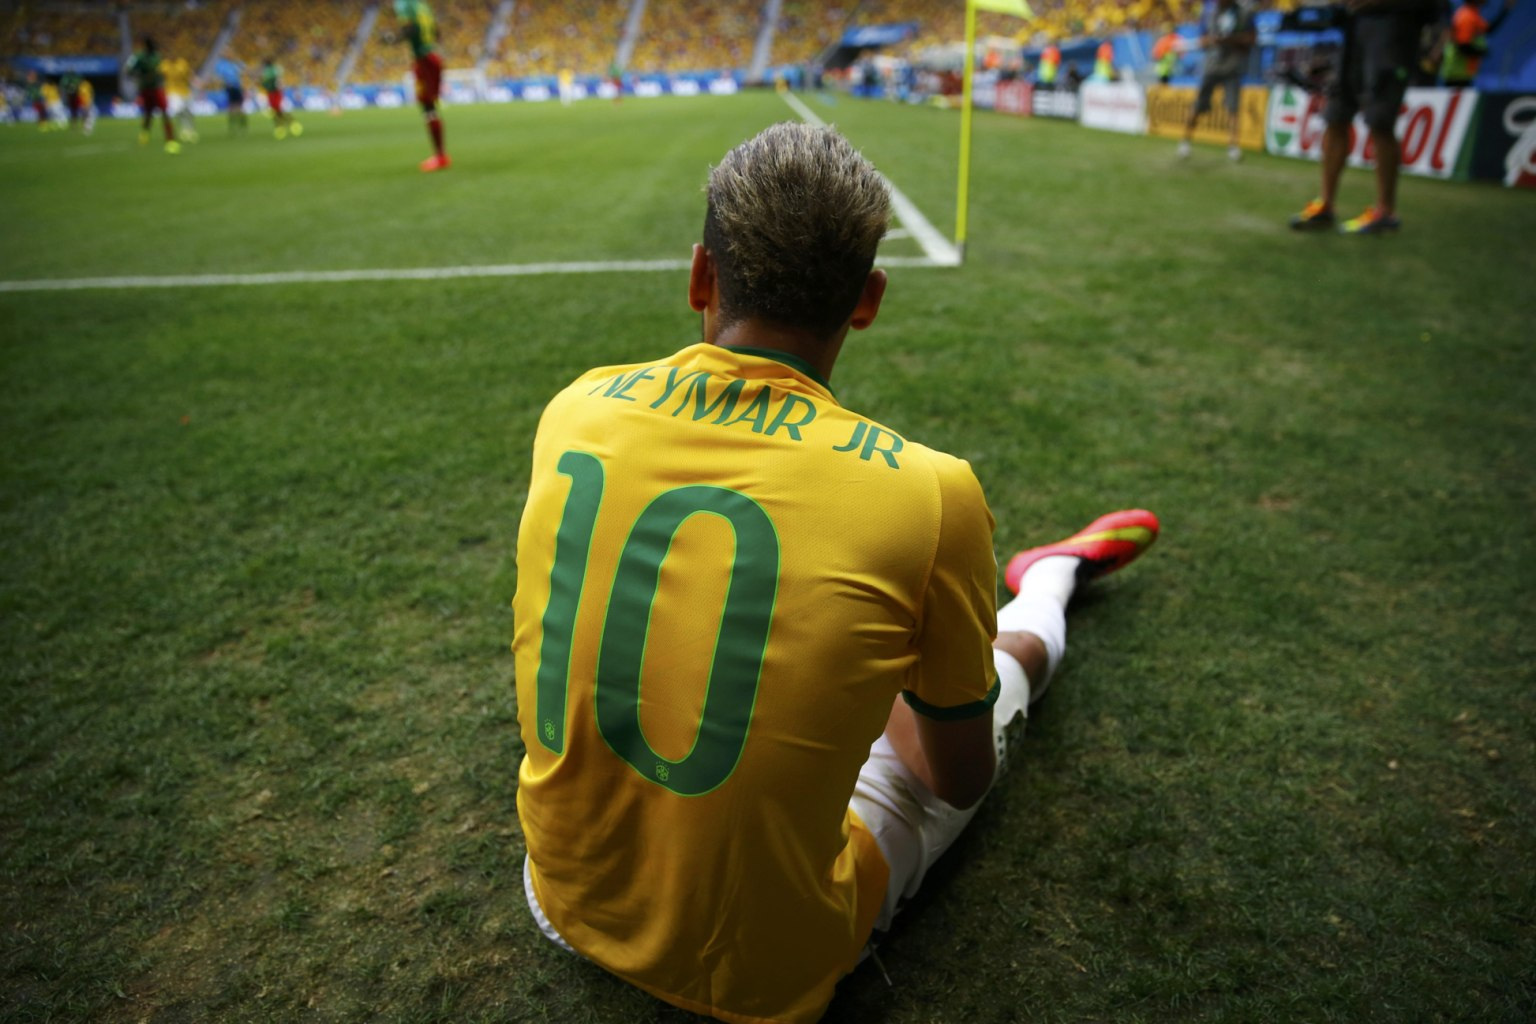 Neymar sitting on the ground, at the FIFA World Cup 2014